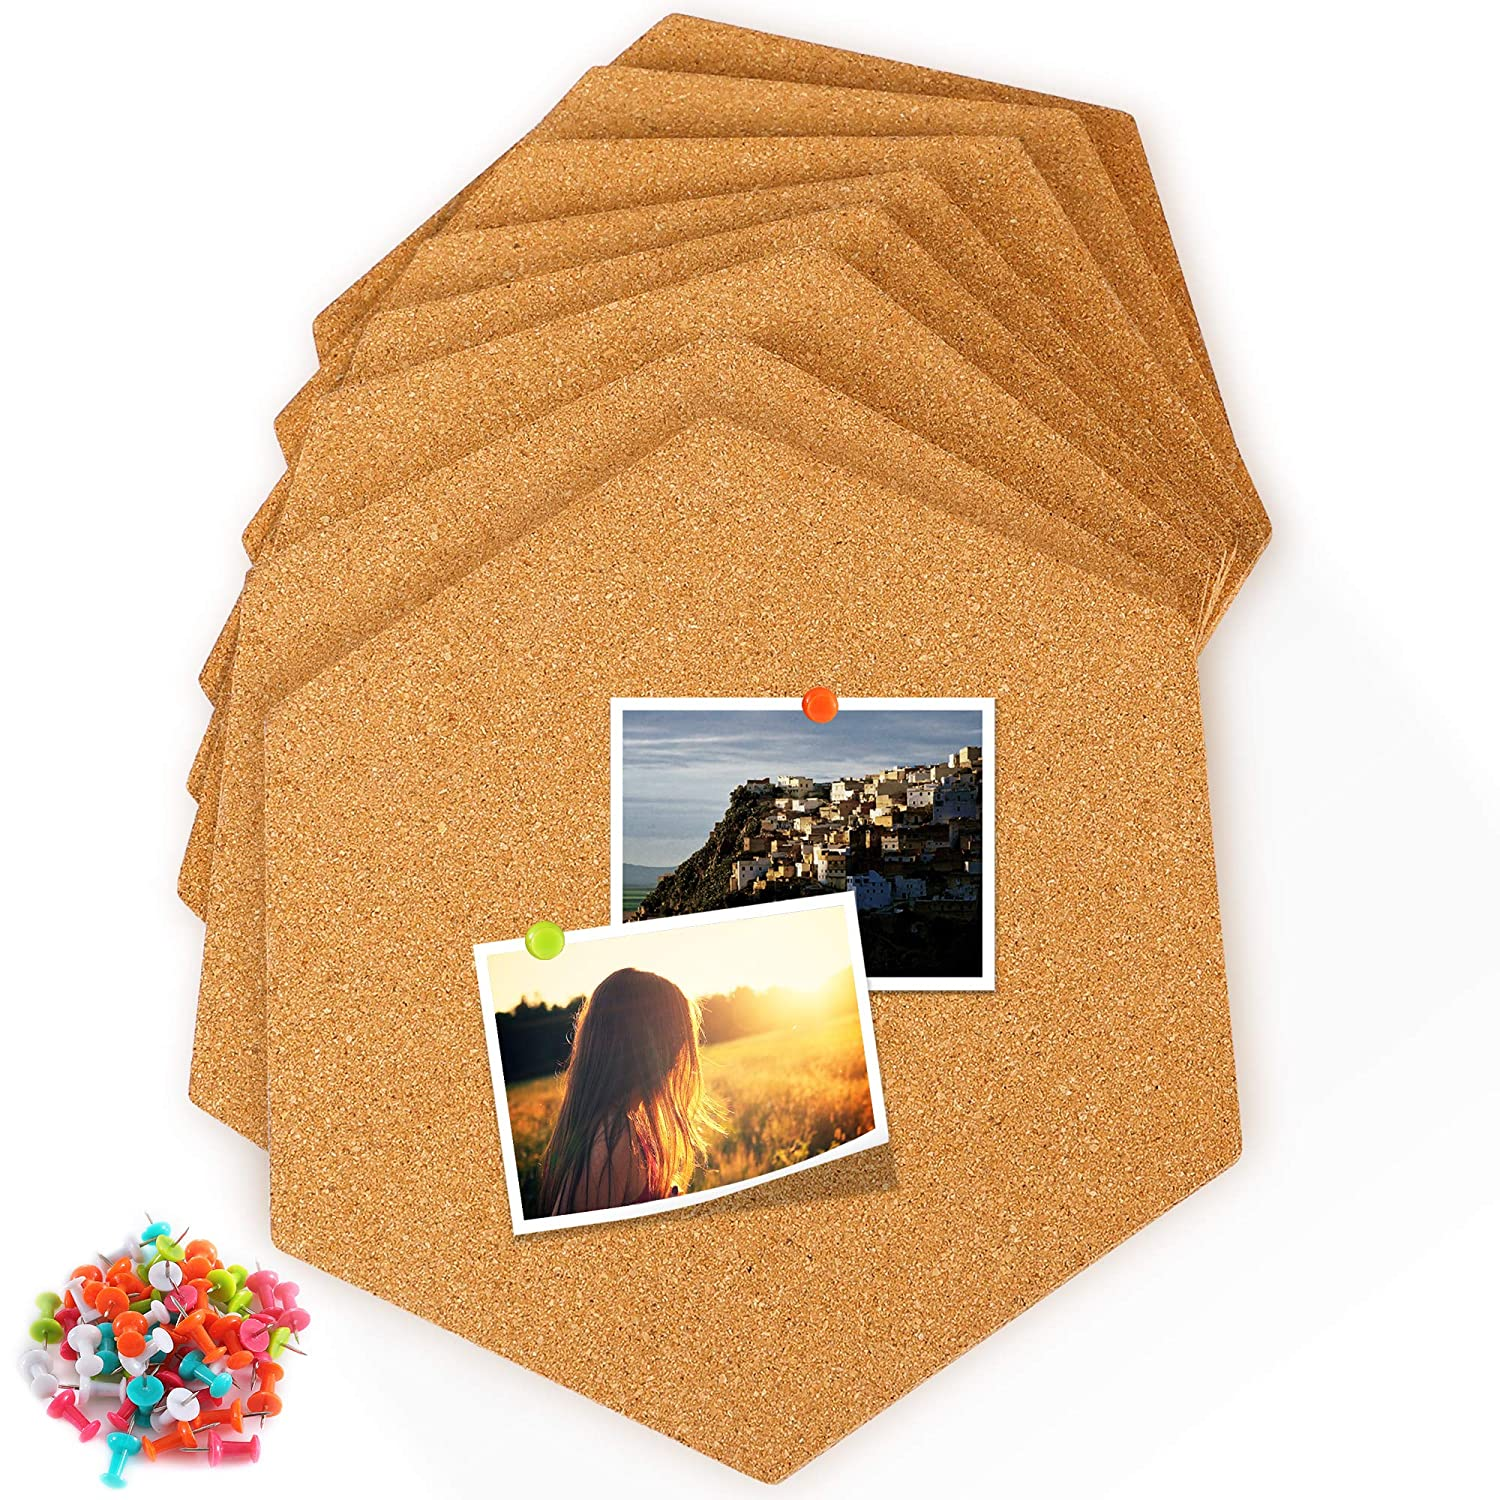 Famistar Hexagon Cork Board Tiles 8 Pack with Full Sticky Back, Mini Wall Bulletin Boards, Pin Board-Decoration for Pictures, Photos, Notes, Goals, Drawing, Painting-Bonus 50 Pins